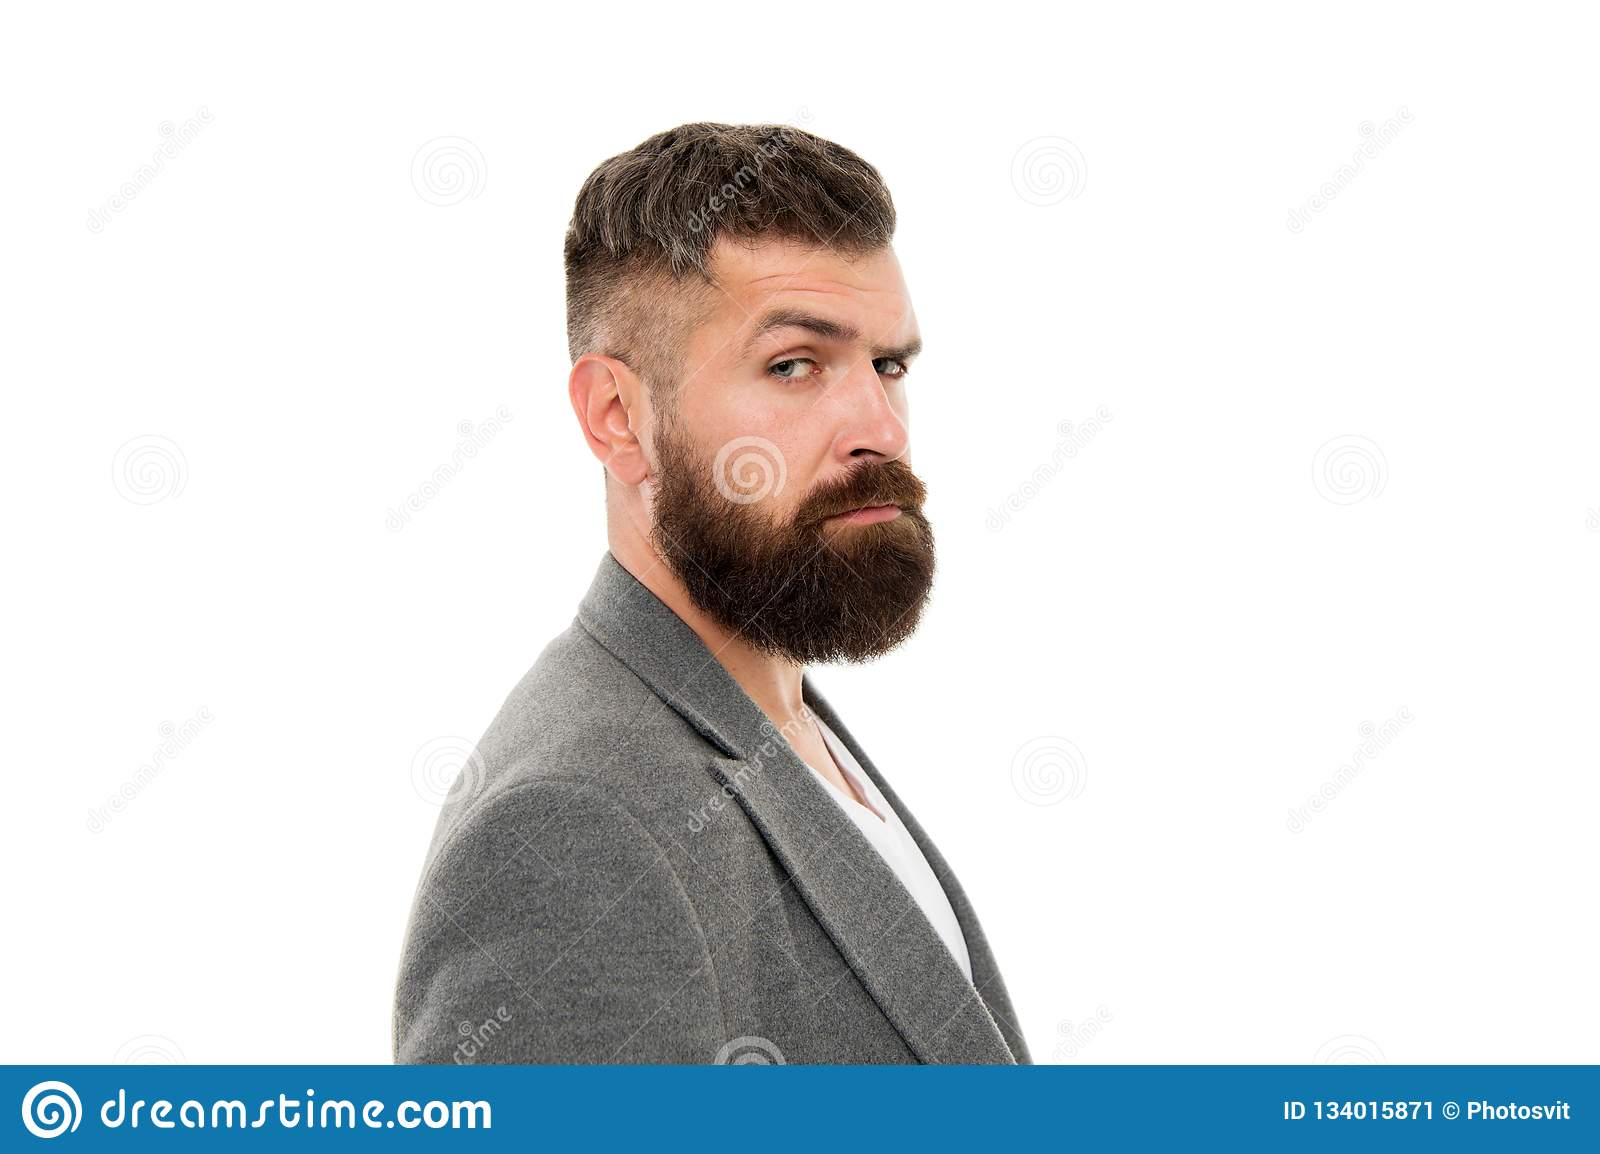 Hip and stylish. Hair and beard care. Bearded man. Male barber care. Mature hipster with beard. brutal caucasian hipster